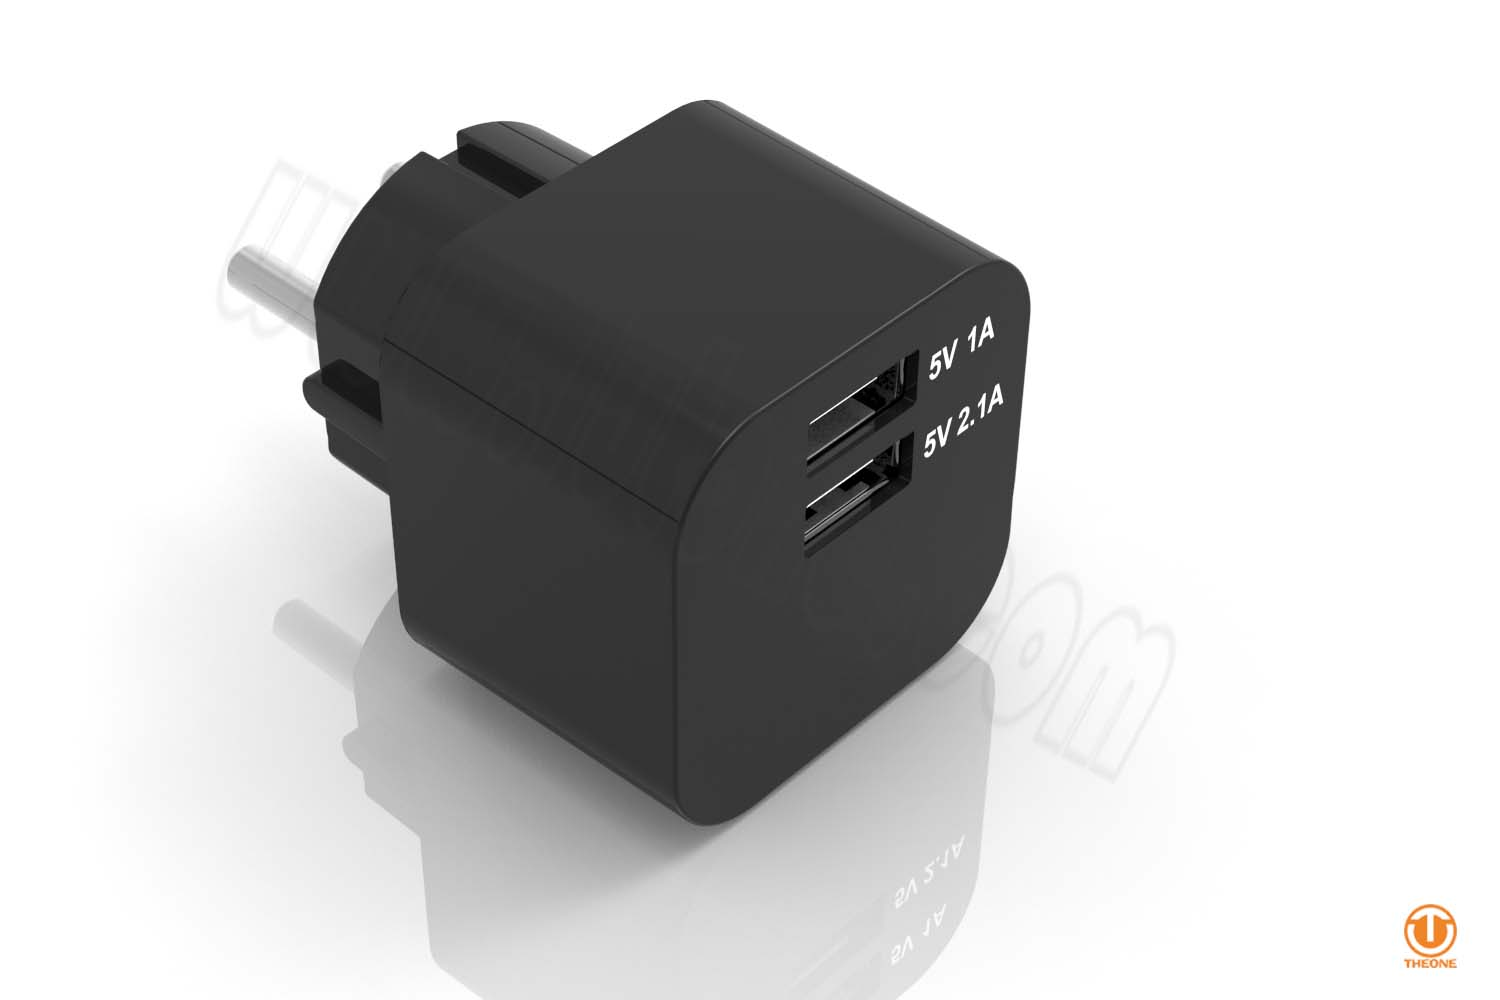 tc03b2-5 dual usb wall charger